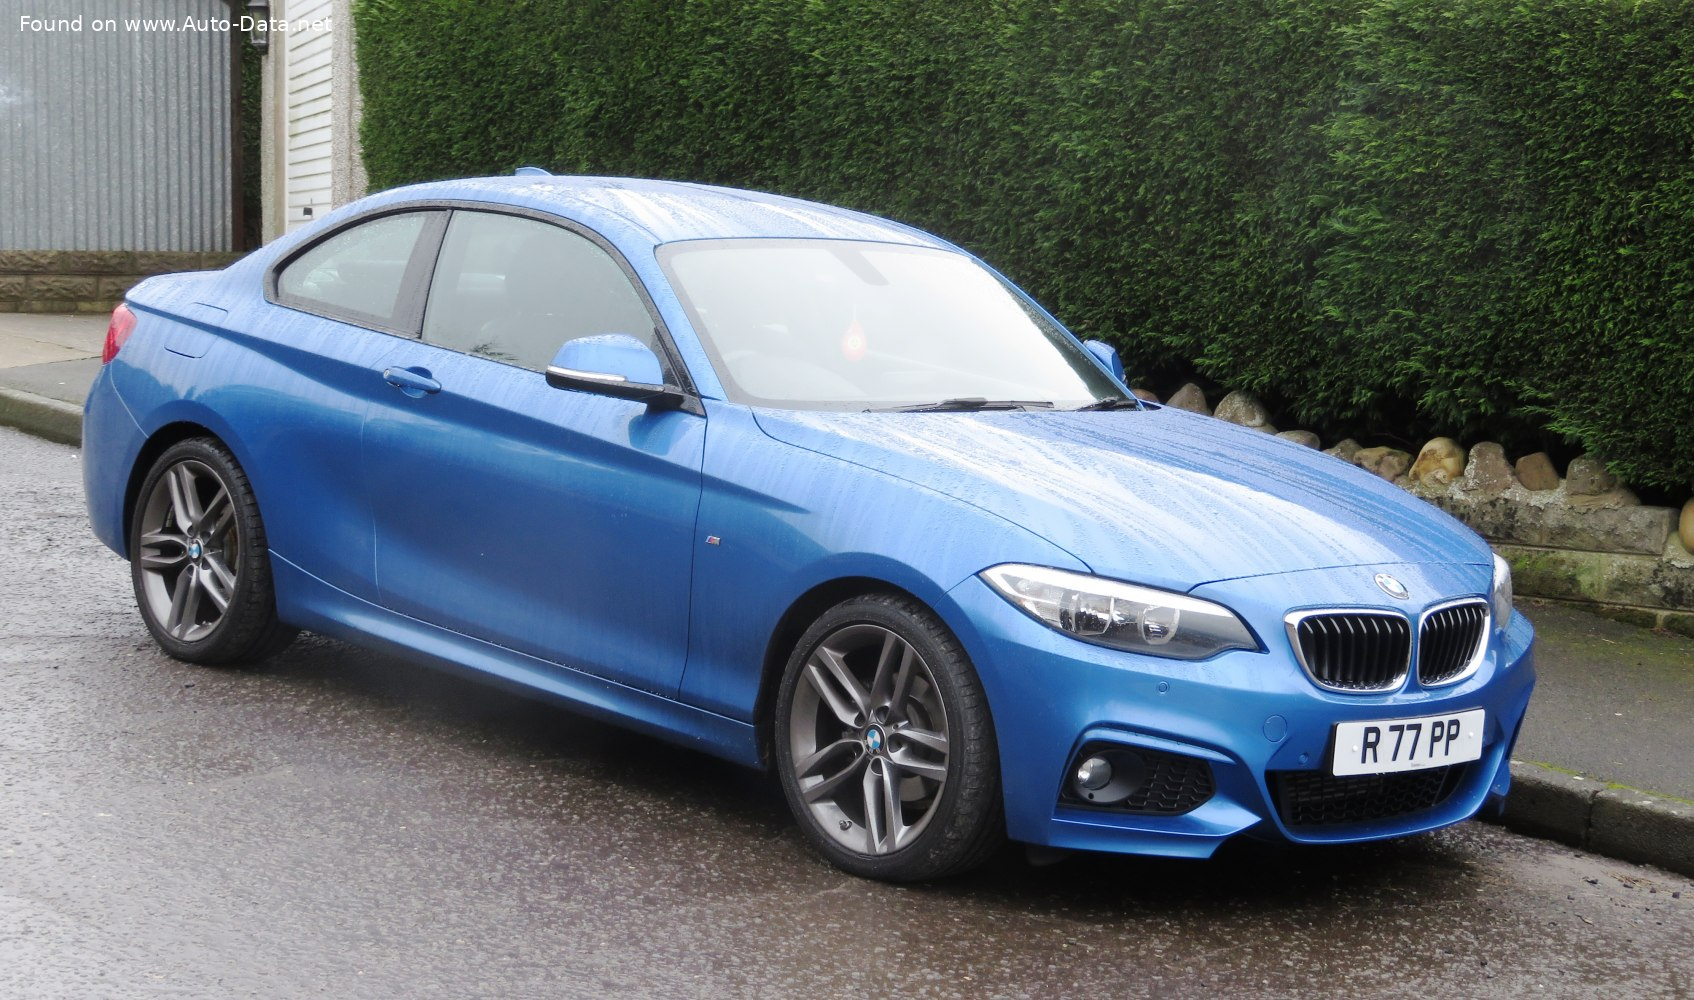 2014 Bmw 2 Series Coupe F22 M235i 326 Hp Technical Specs Data Fuel Consumption Dimensions